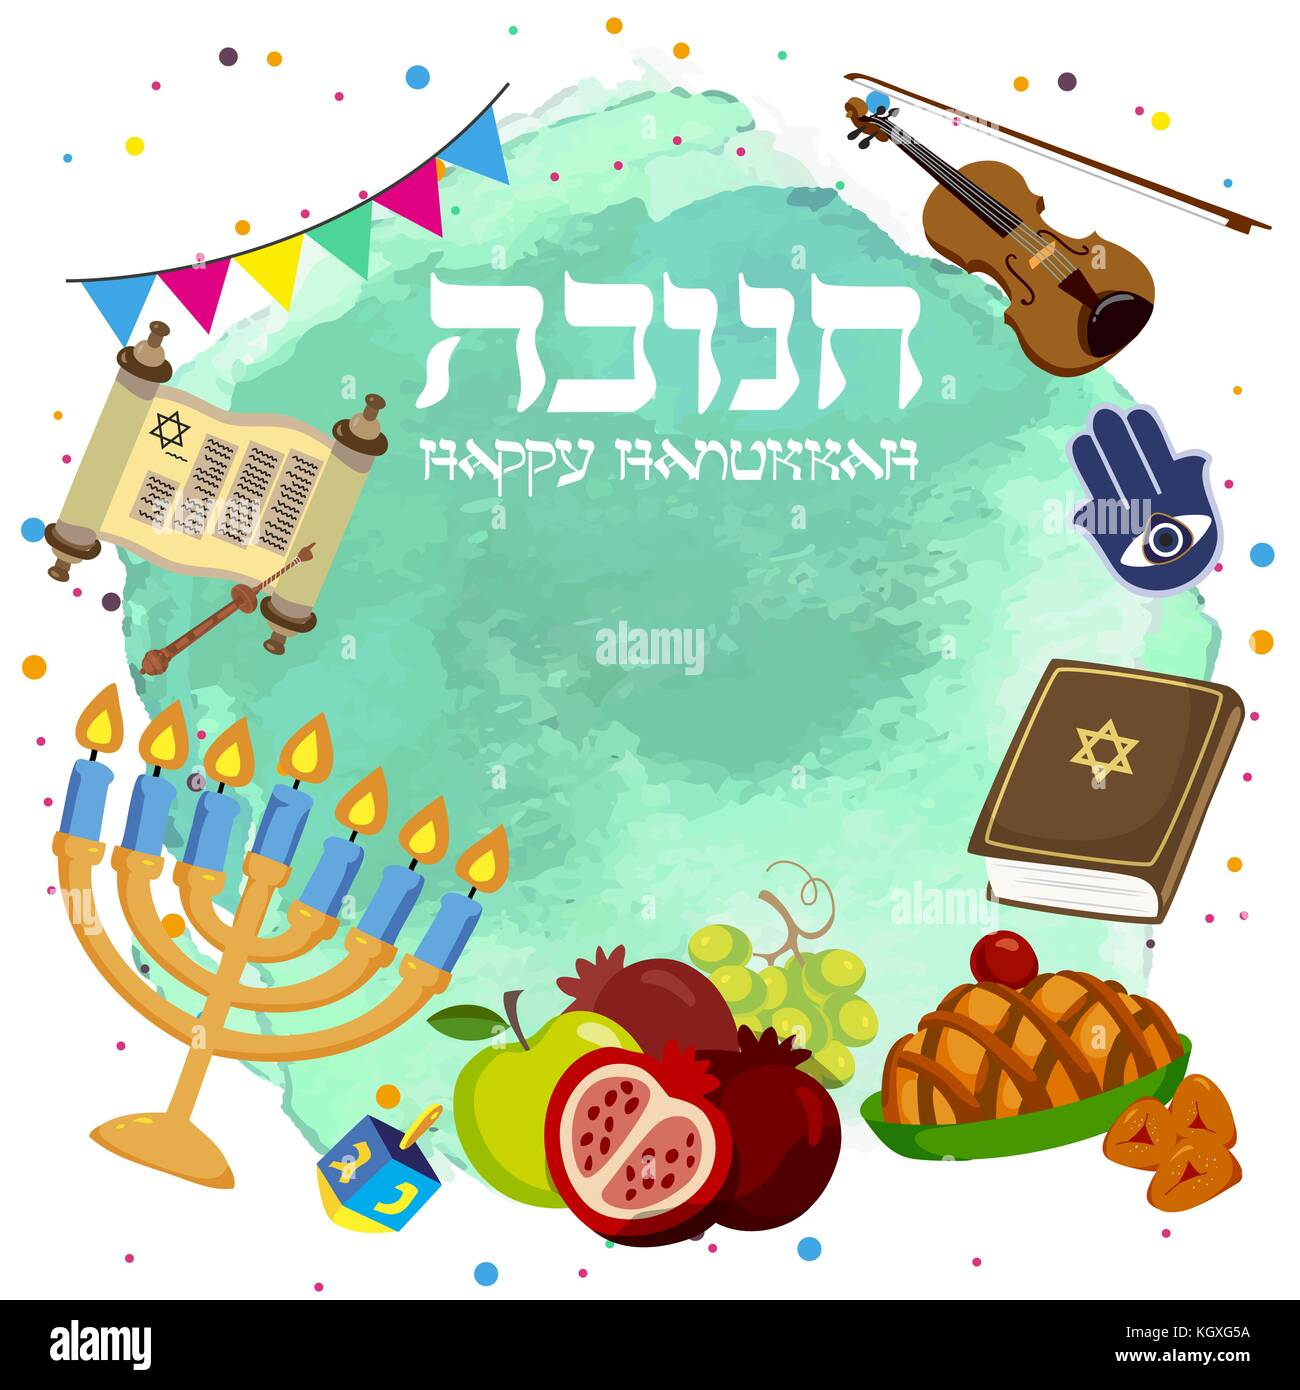 Colorful Origami Happy Hanukkah Greeting card on blue background - Stock Vector